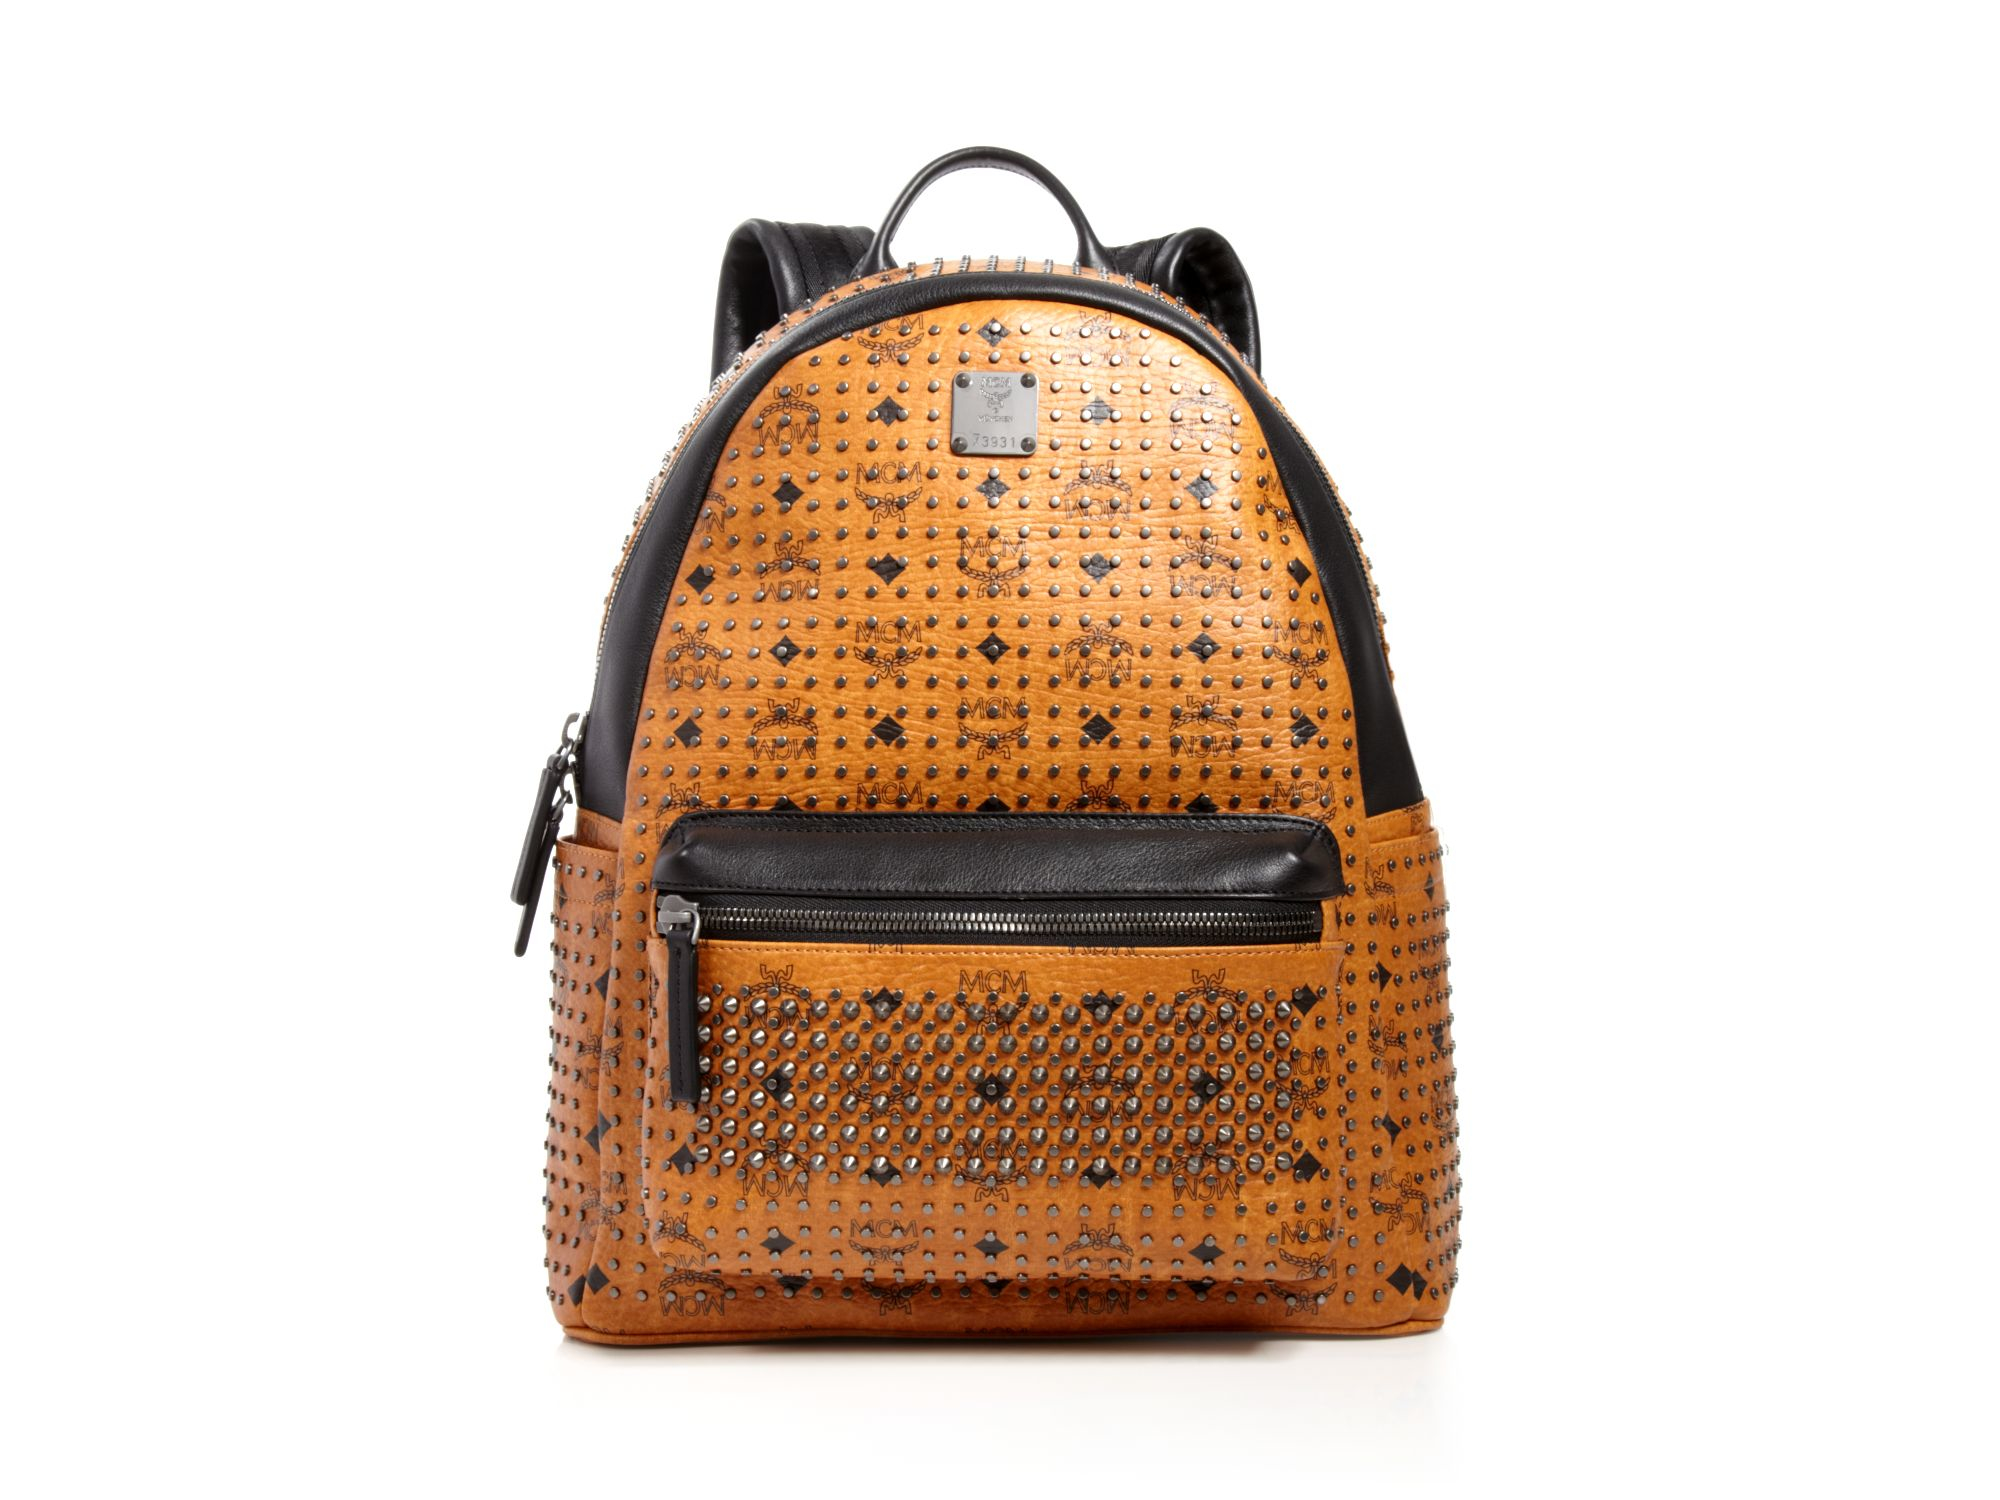 6e9552f9f47 Lyst - MCM Stark Special Backpack in Brown for Men